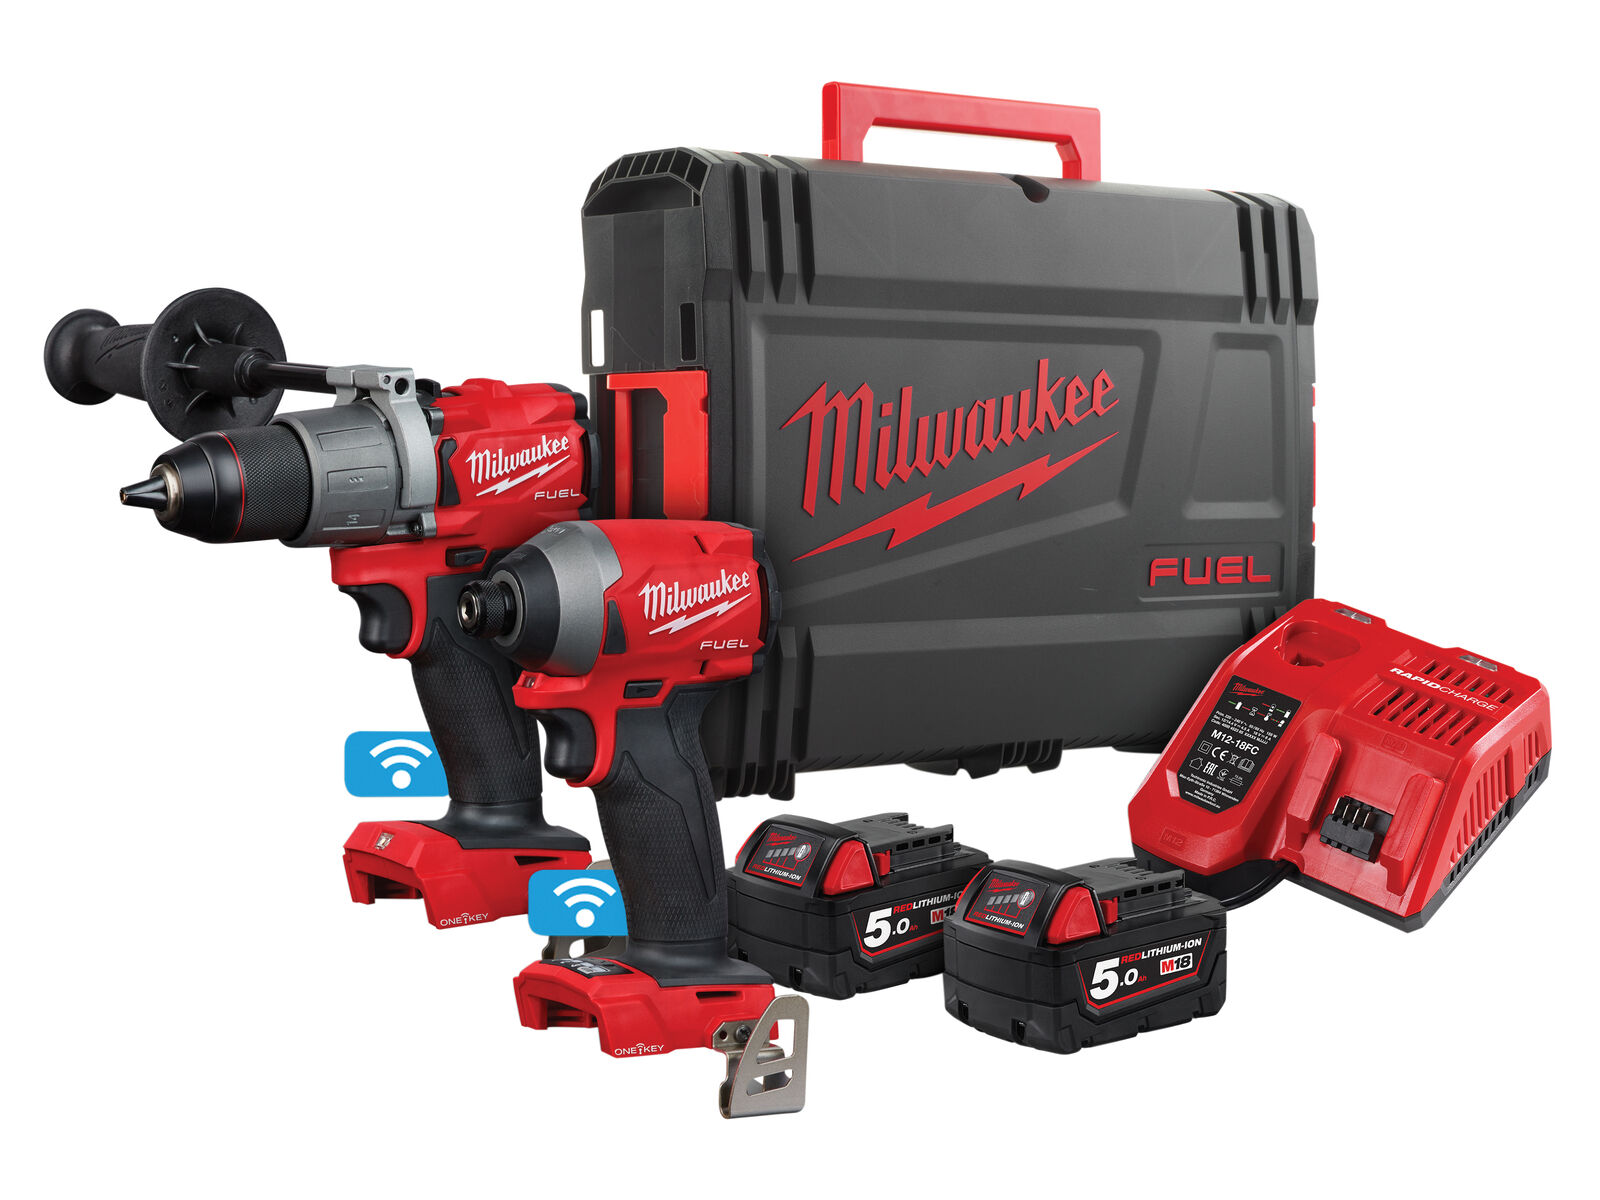 Milwaukee M18ONEPP2A2-502X One-Key 18V Fuel Combi Drill & Impact Driver Twin Pack - 5.0Ah Pack